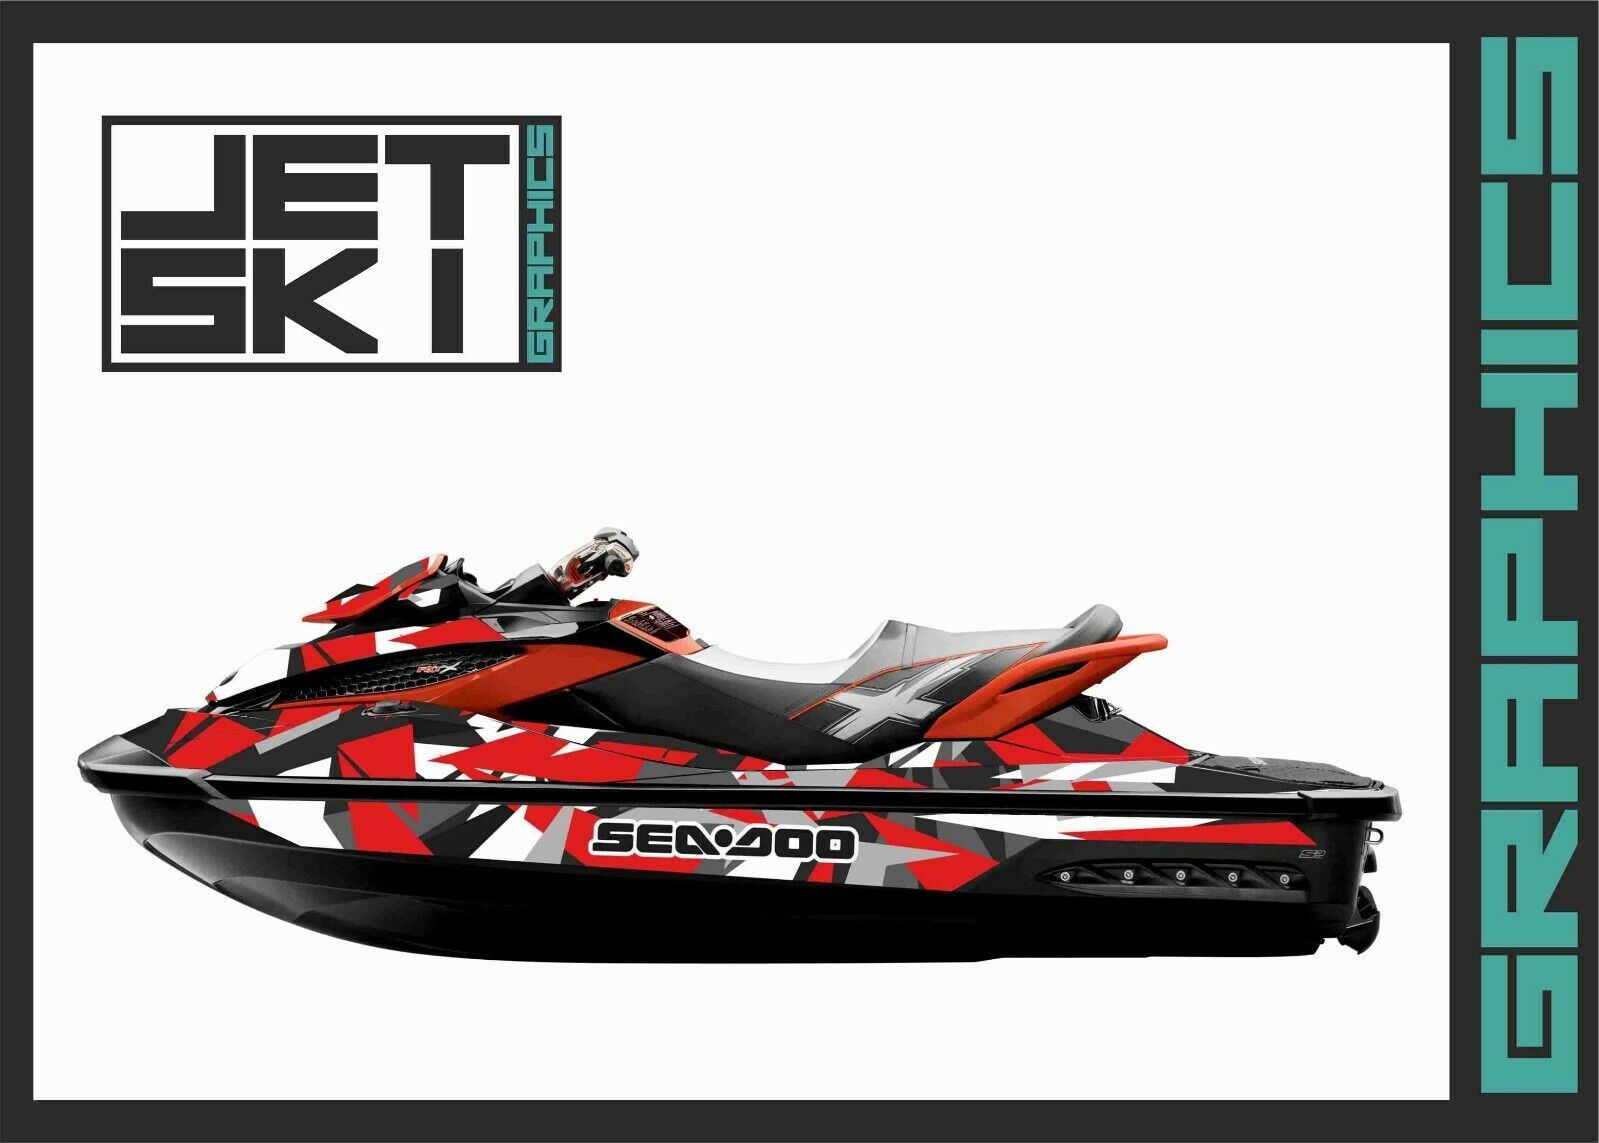 Sea-Doo RXT RXTX GTX 260 300 WAKE PRO 215 2009-2017  jetski kit graphics decals